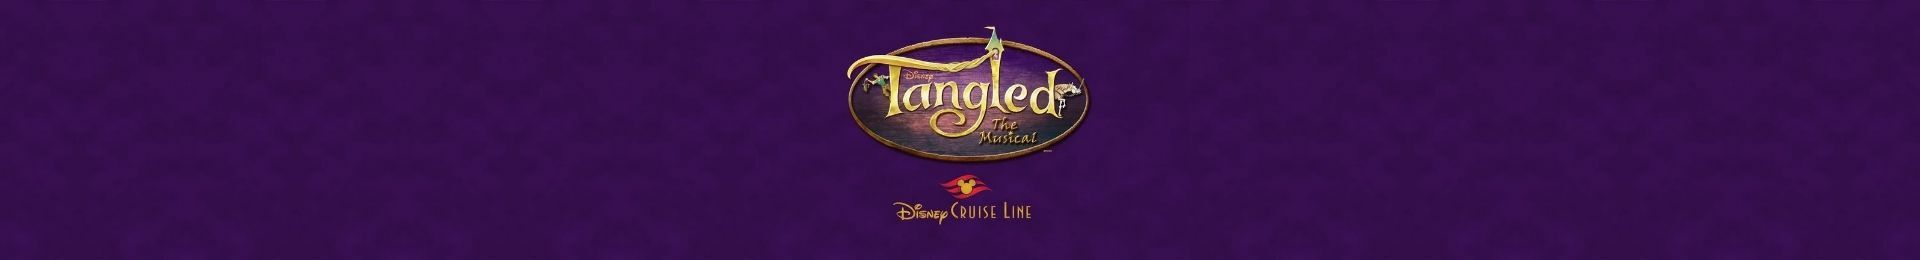 Disney S Cruise Musical Production Of Tangled Released In Full On Youtube London Theatre Direct